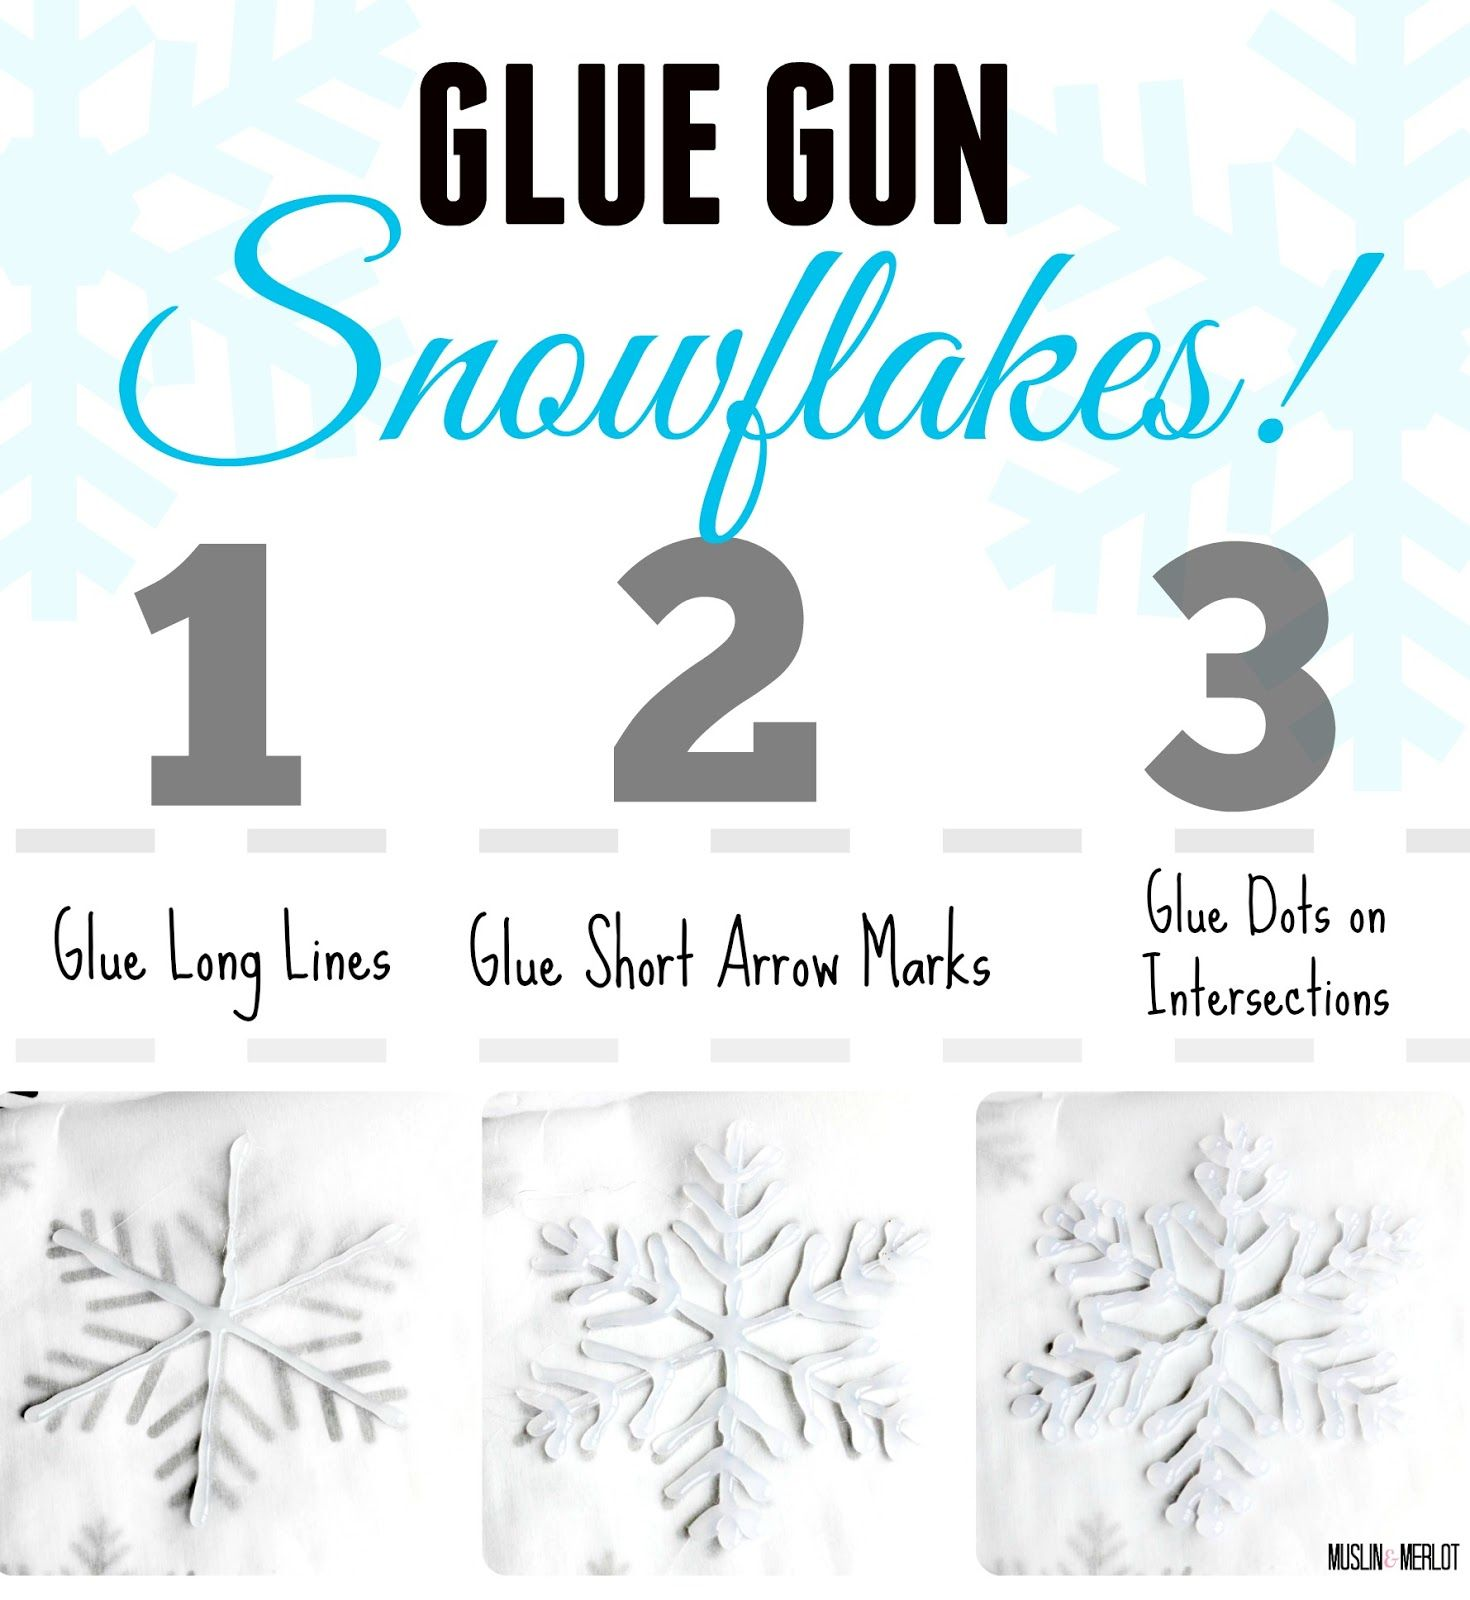 Glue Gun Snowflake Craft step-by-step